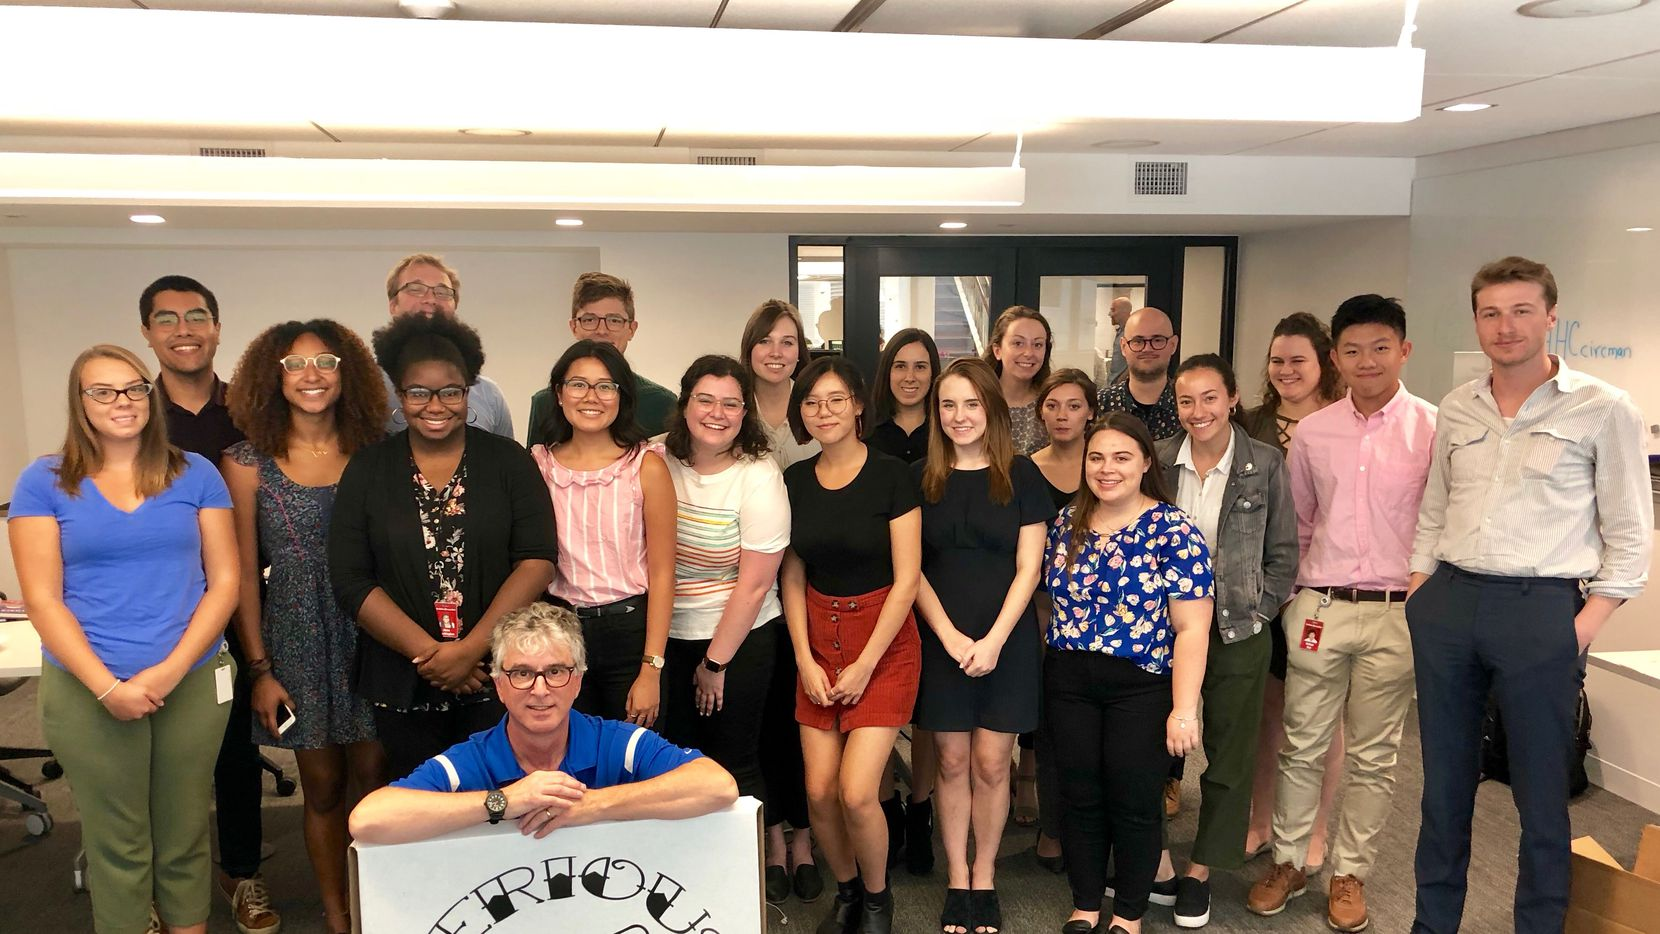 The 2018 Dallas Morning News interns with Watchdog columnist Dave Lieber